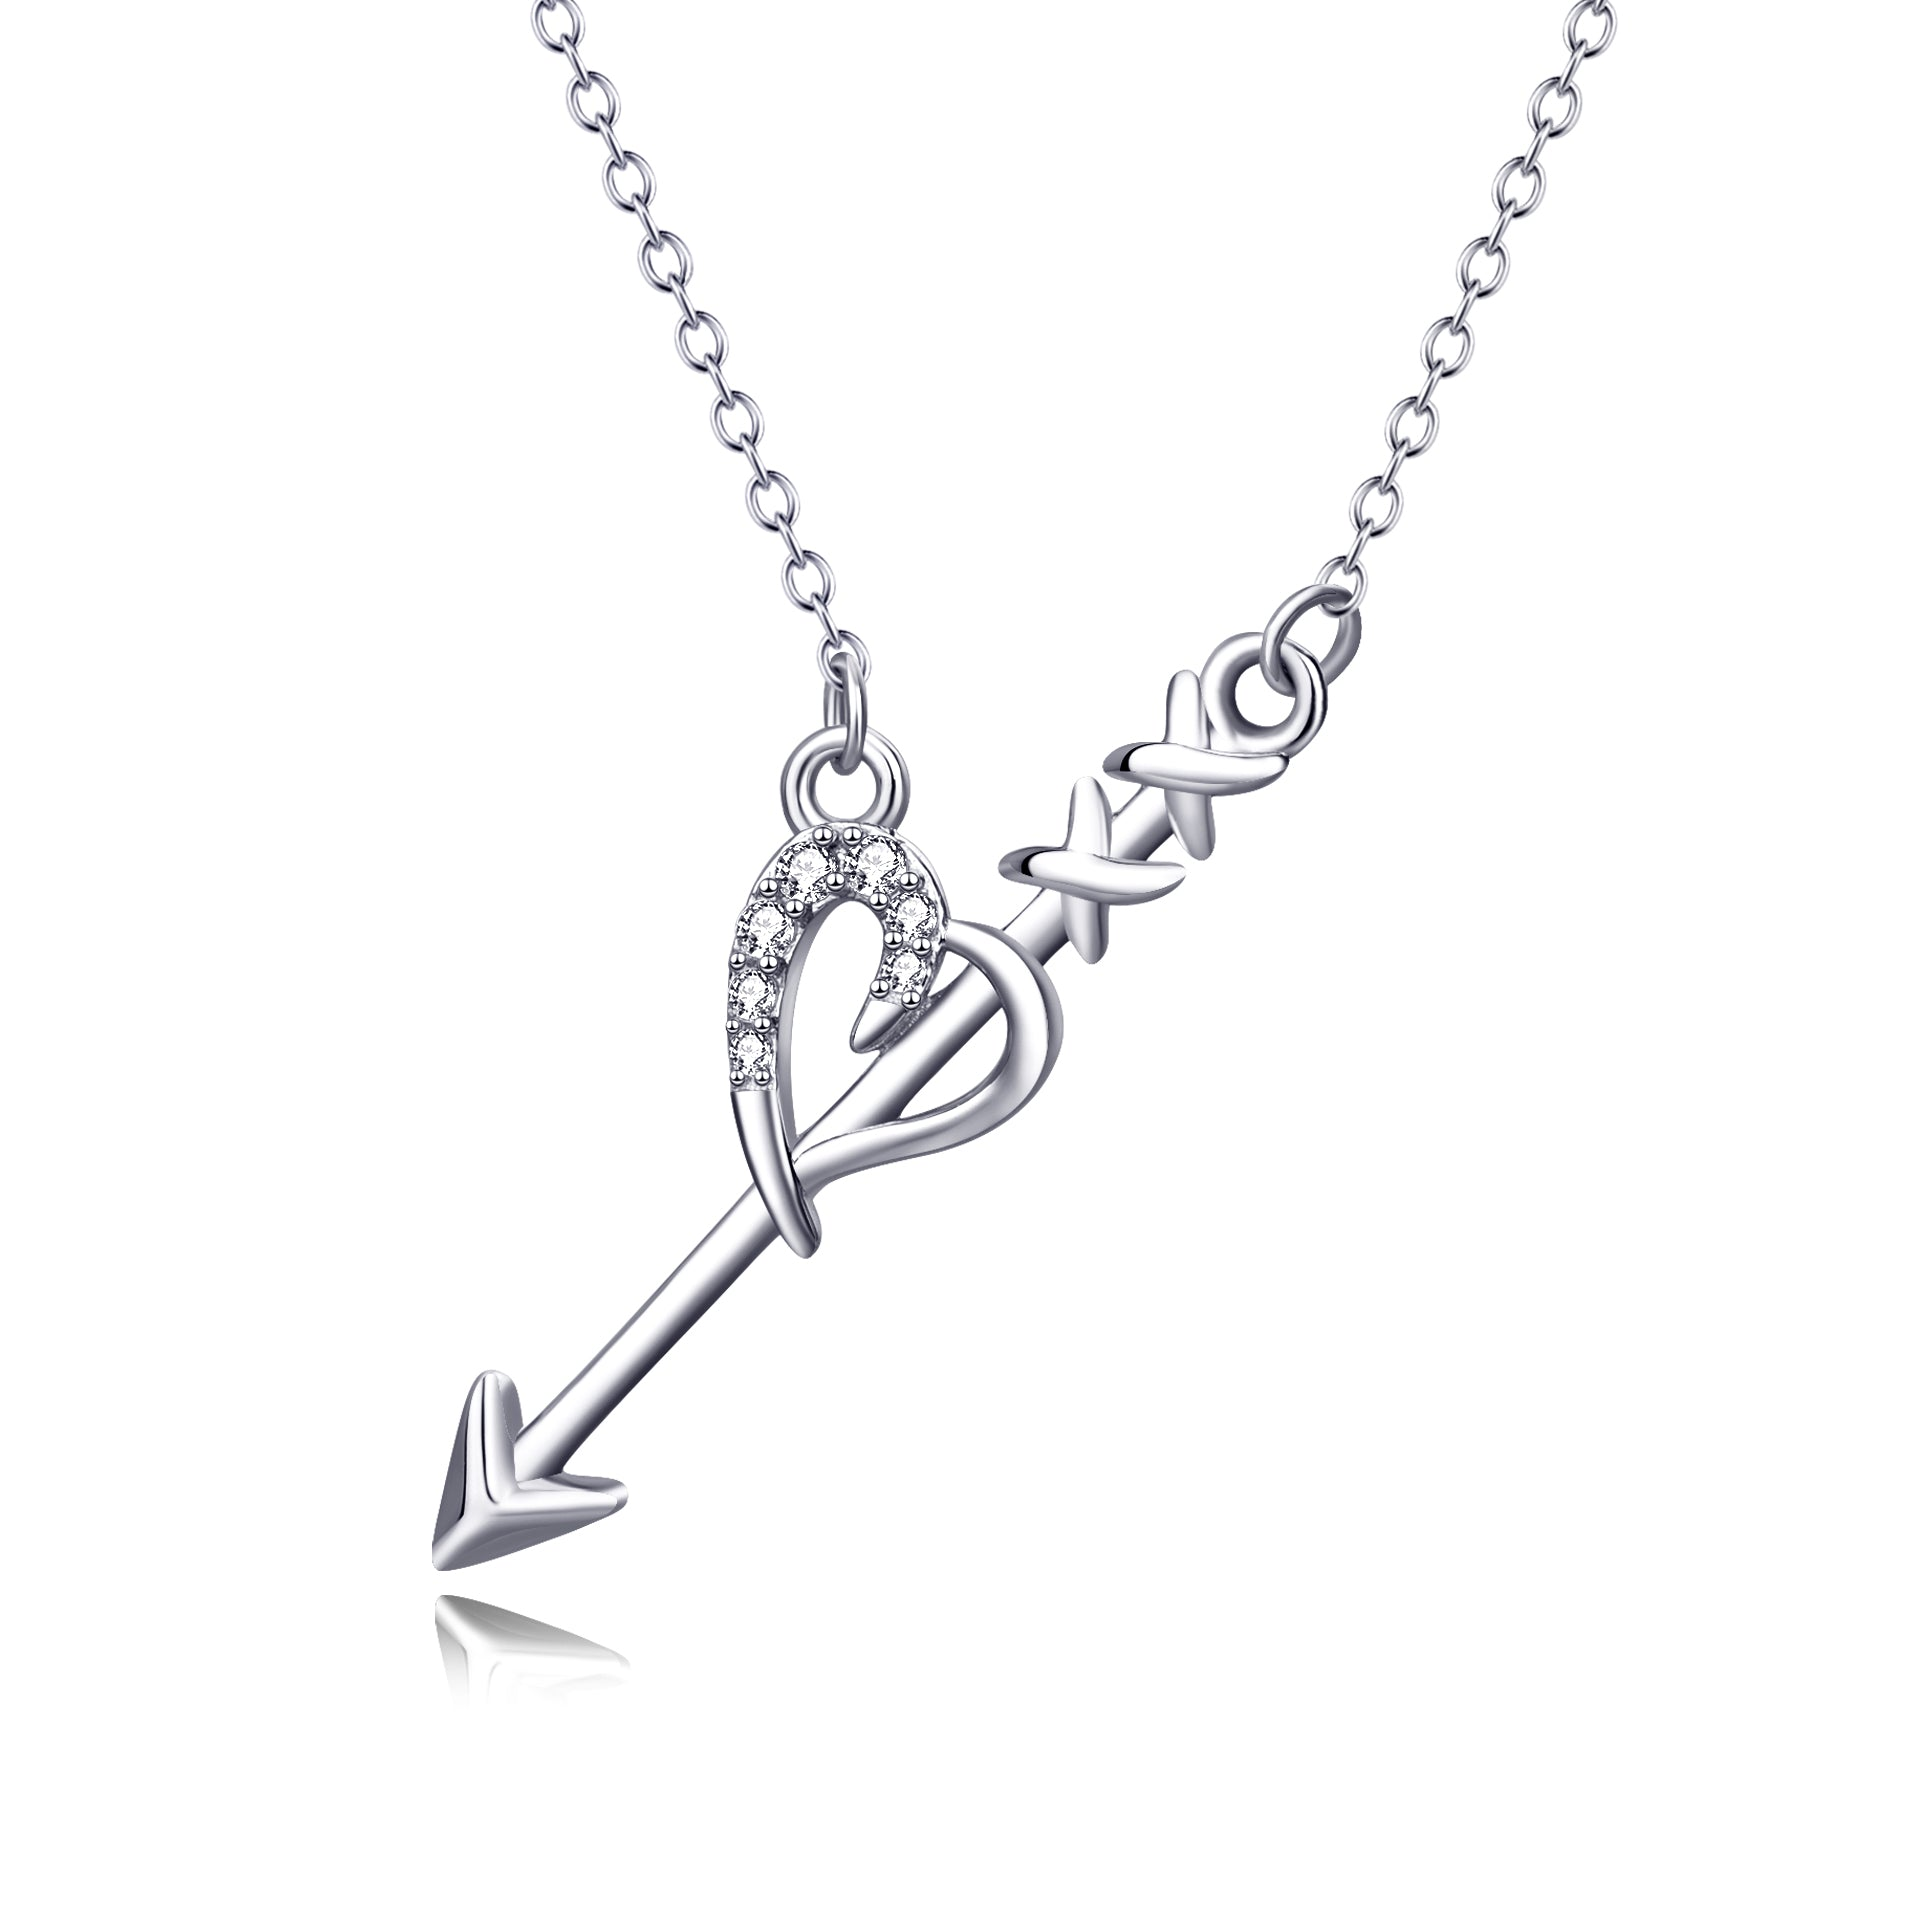 Wholesale Cupids Arrow Heart Shaped Necklace Crystal Pendant Necklace